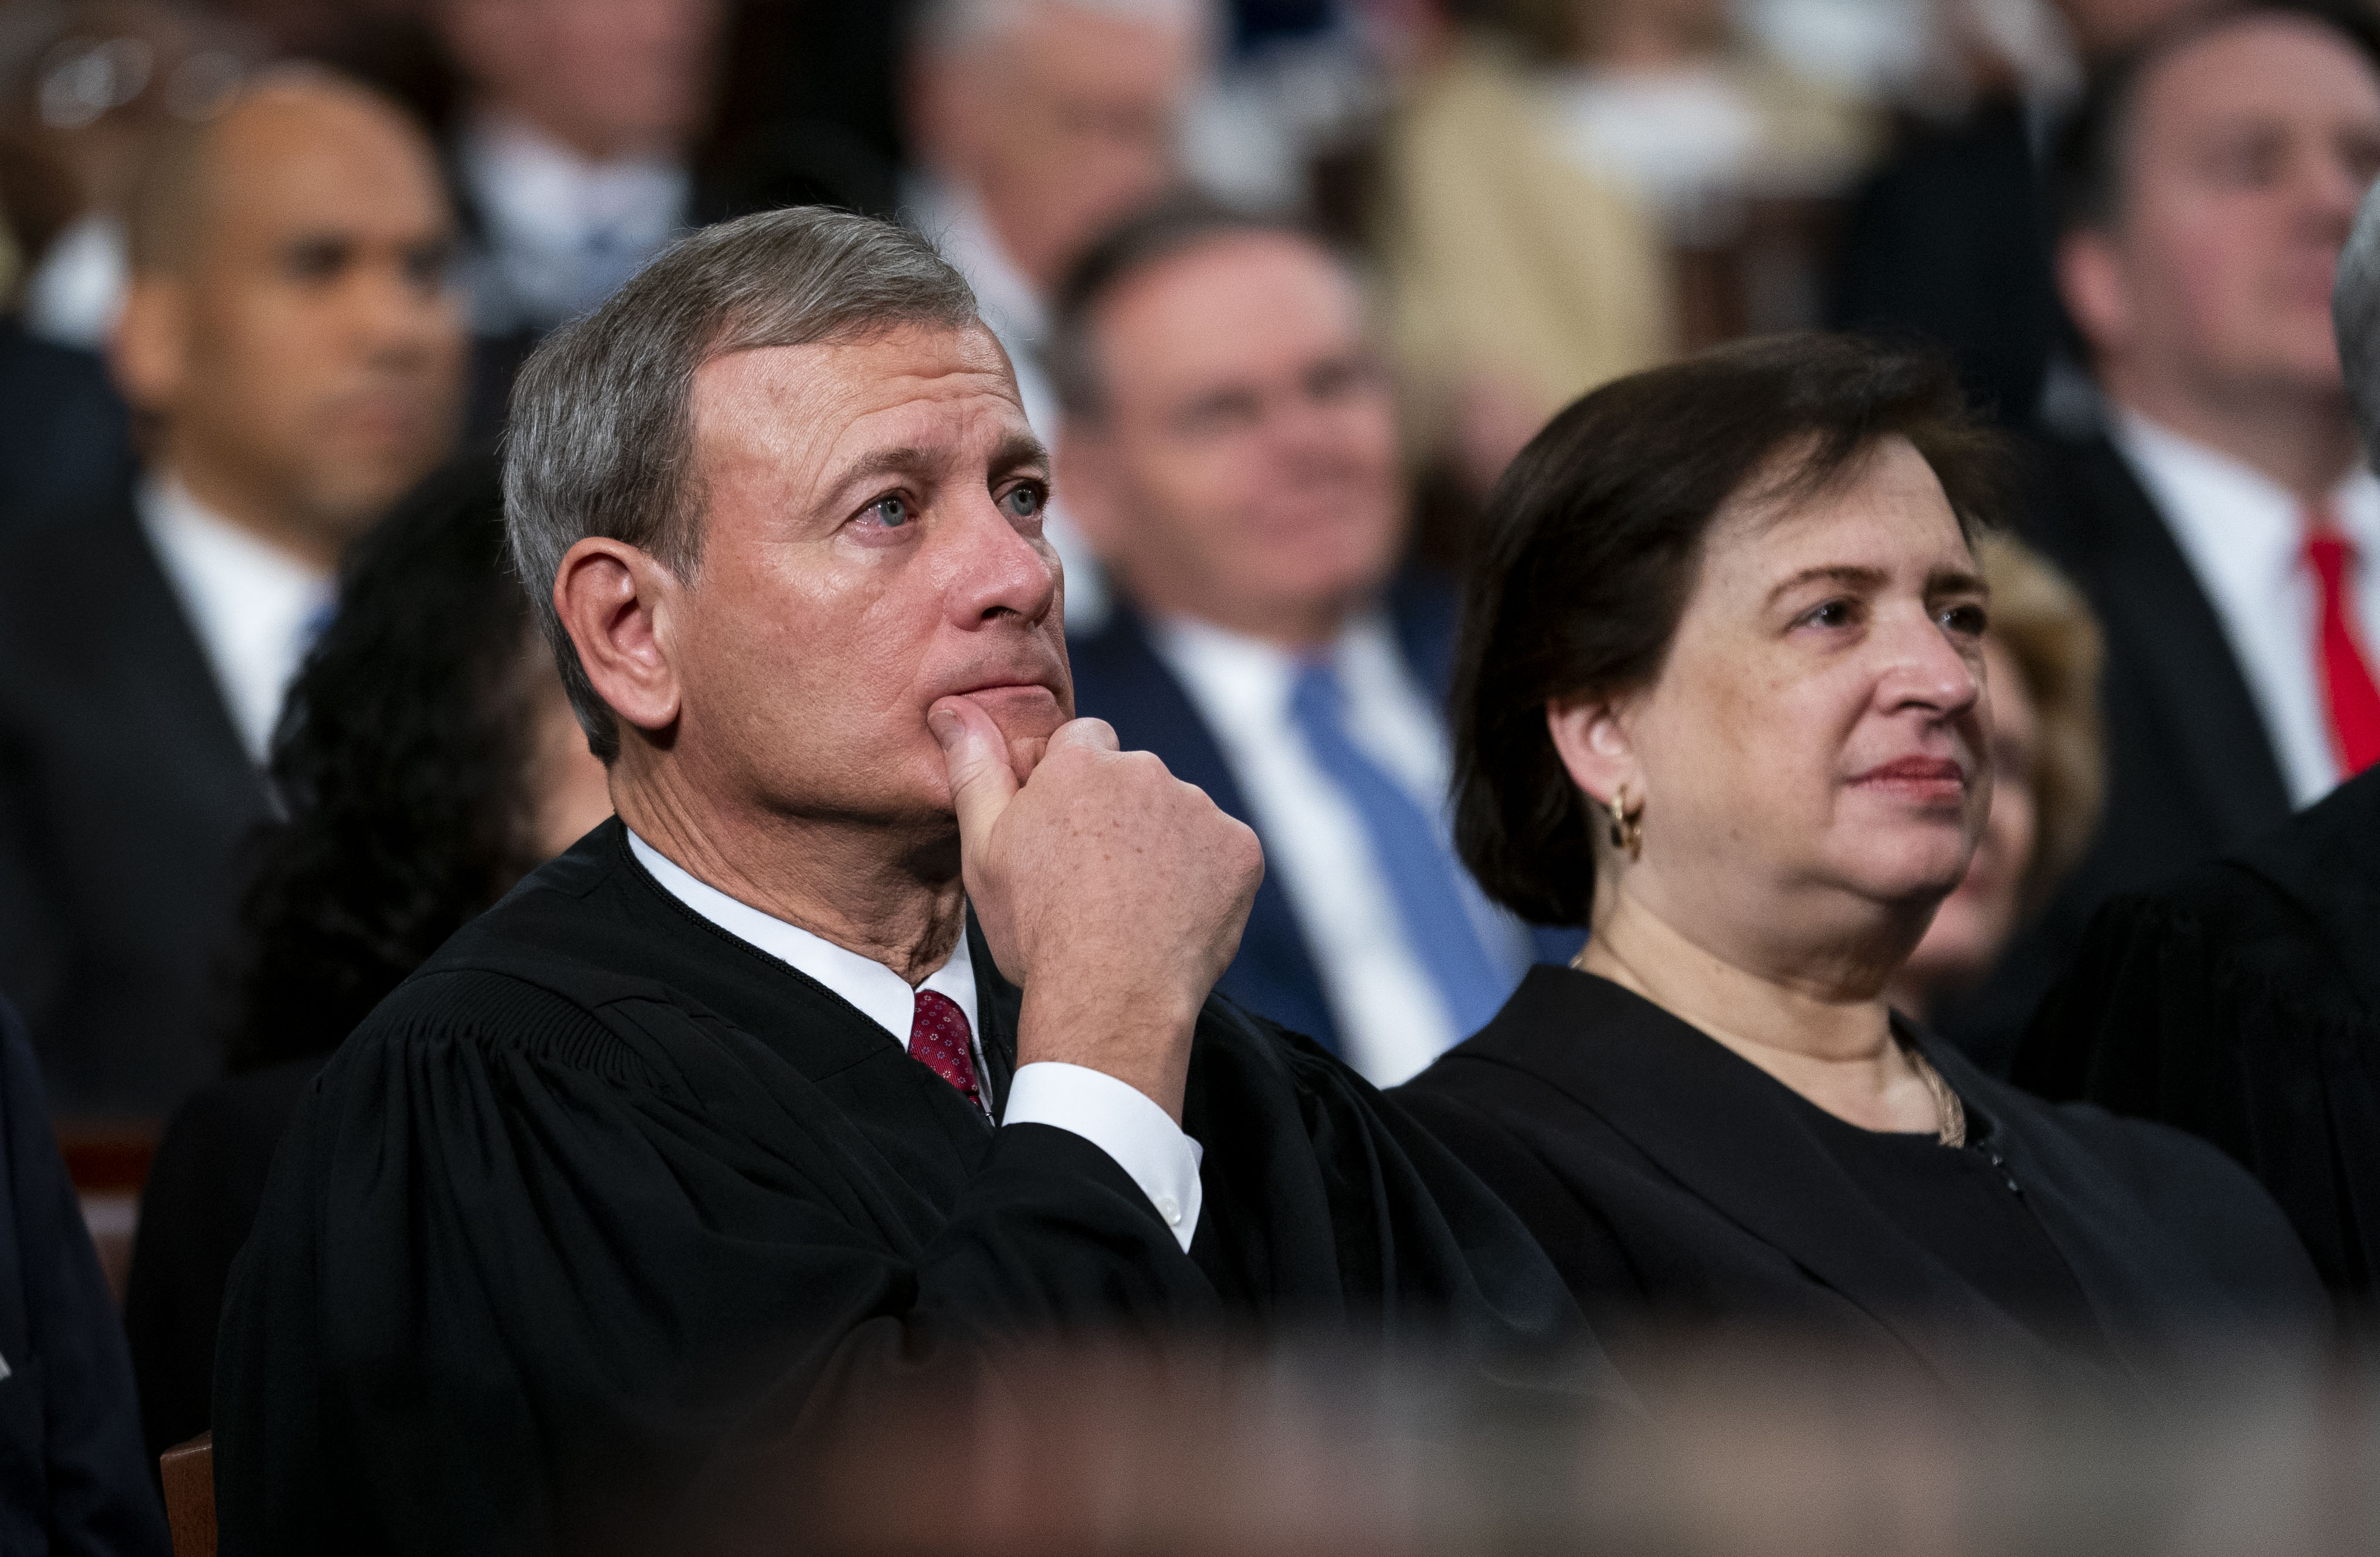 Impeachment Trial Looming, Chief Justice Reflects on Judicial Independence